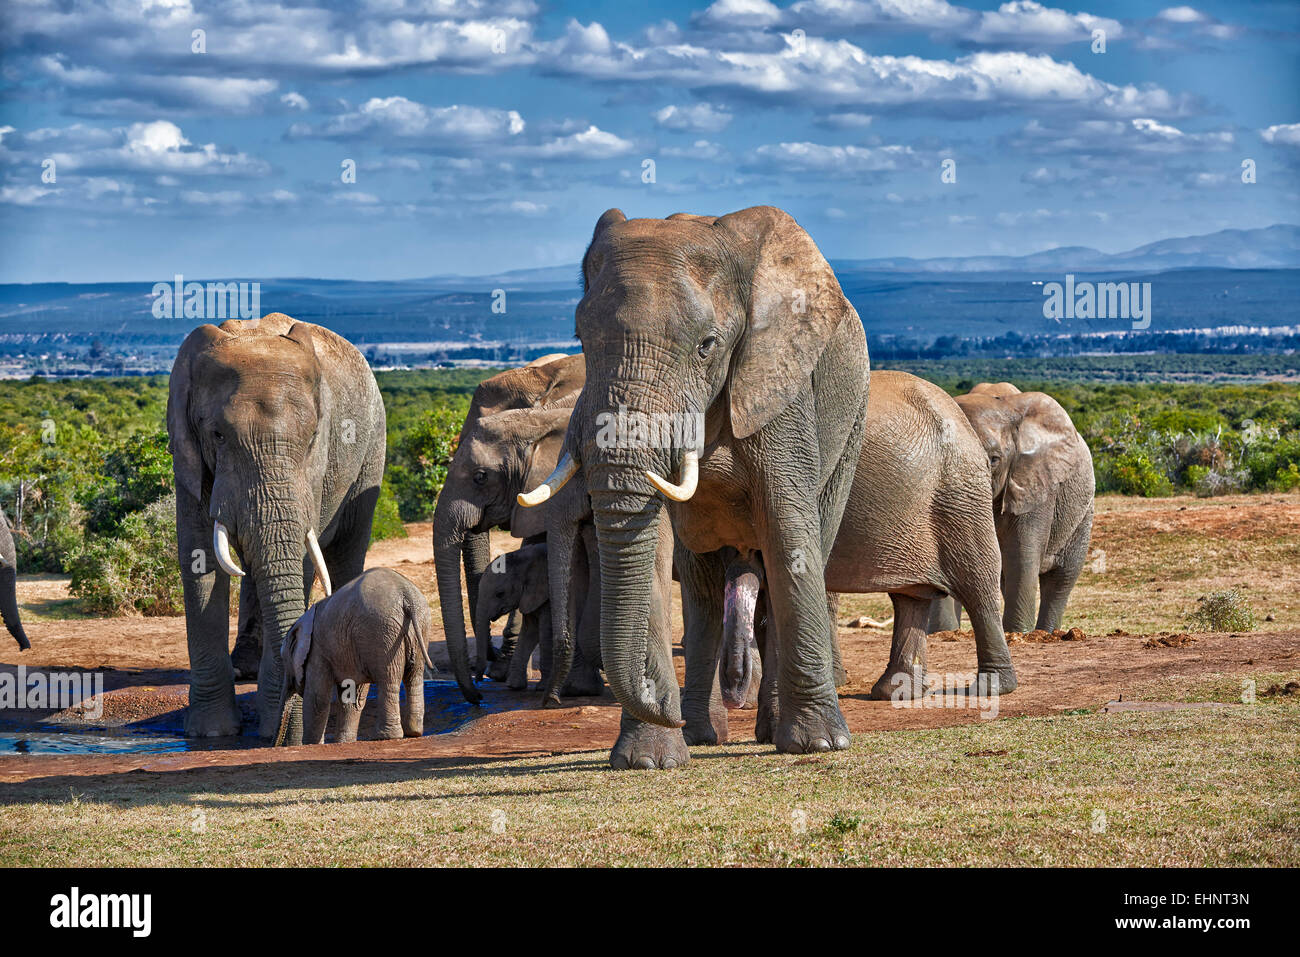 big male African bush elephant (Loxodonta africana), Addo Elephant National Park, Eastern Cape, South Africa - Stock Image